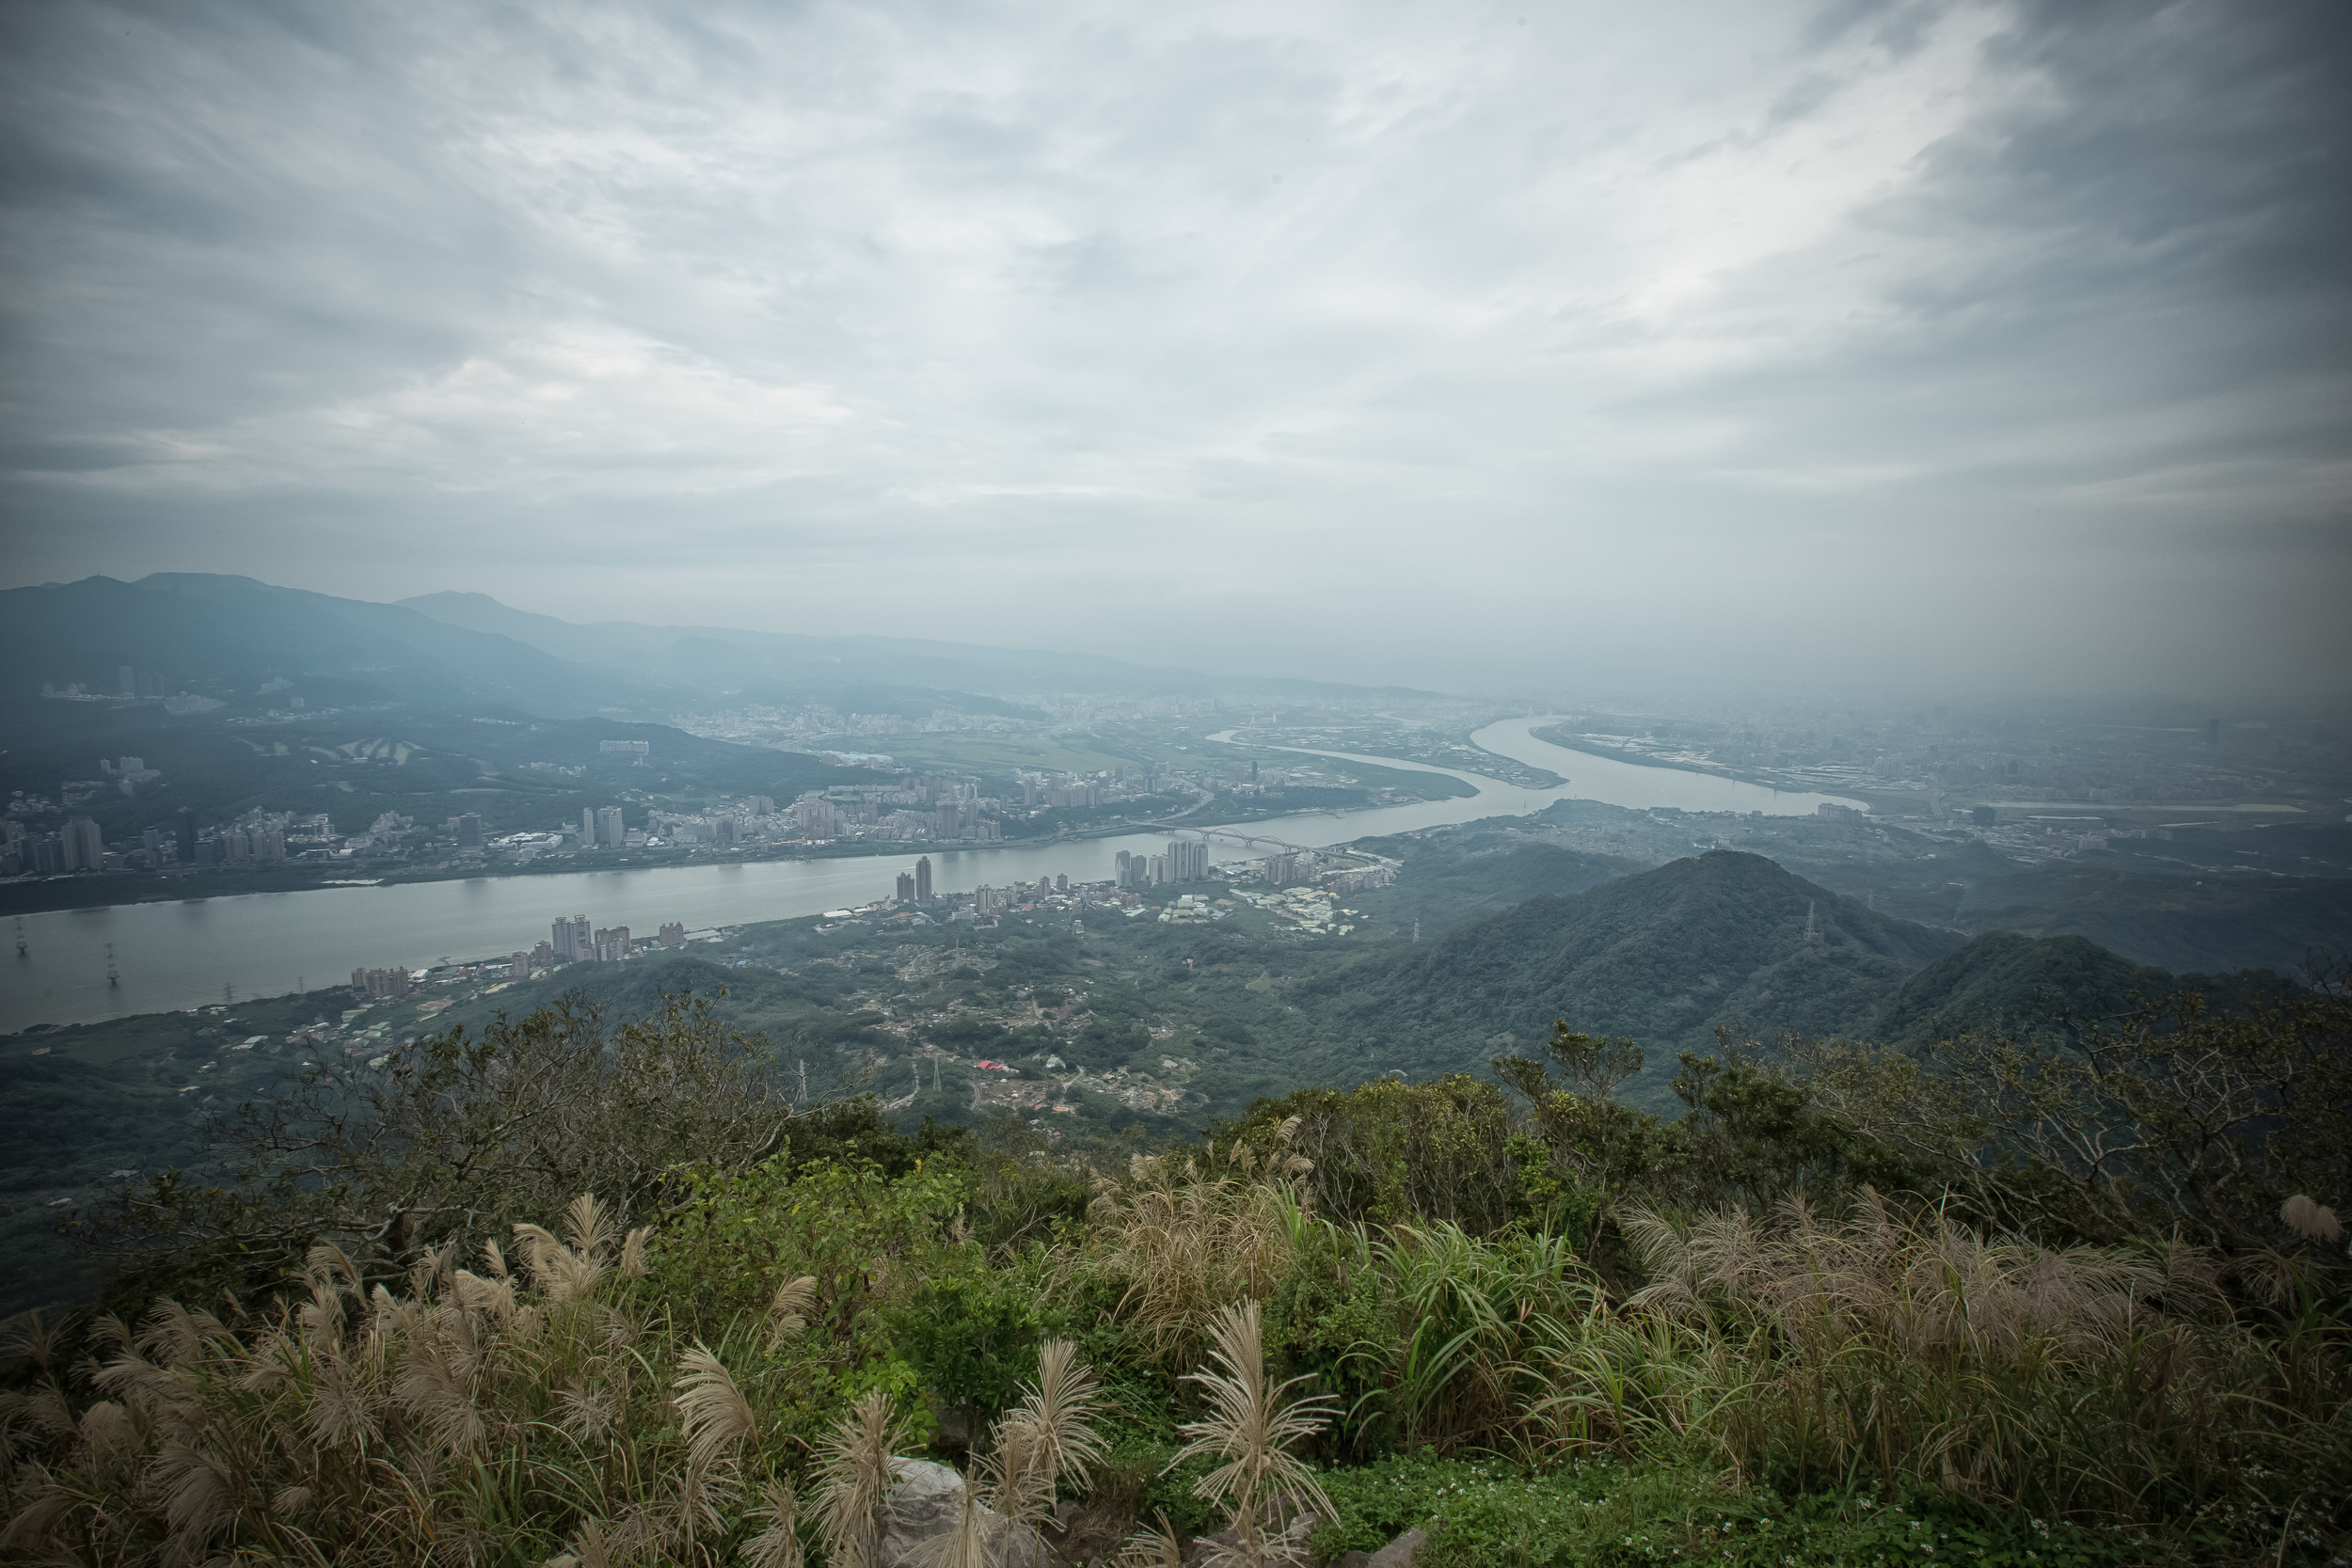 - Looking towards a hazy Taipei from the peak of Guanyin Mountain